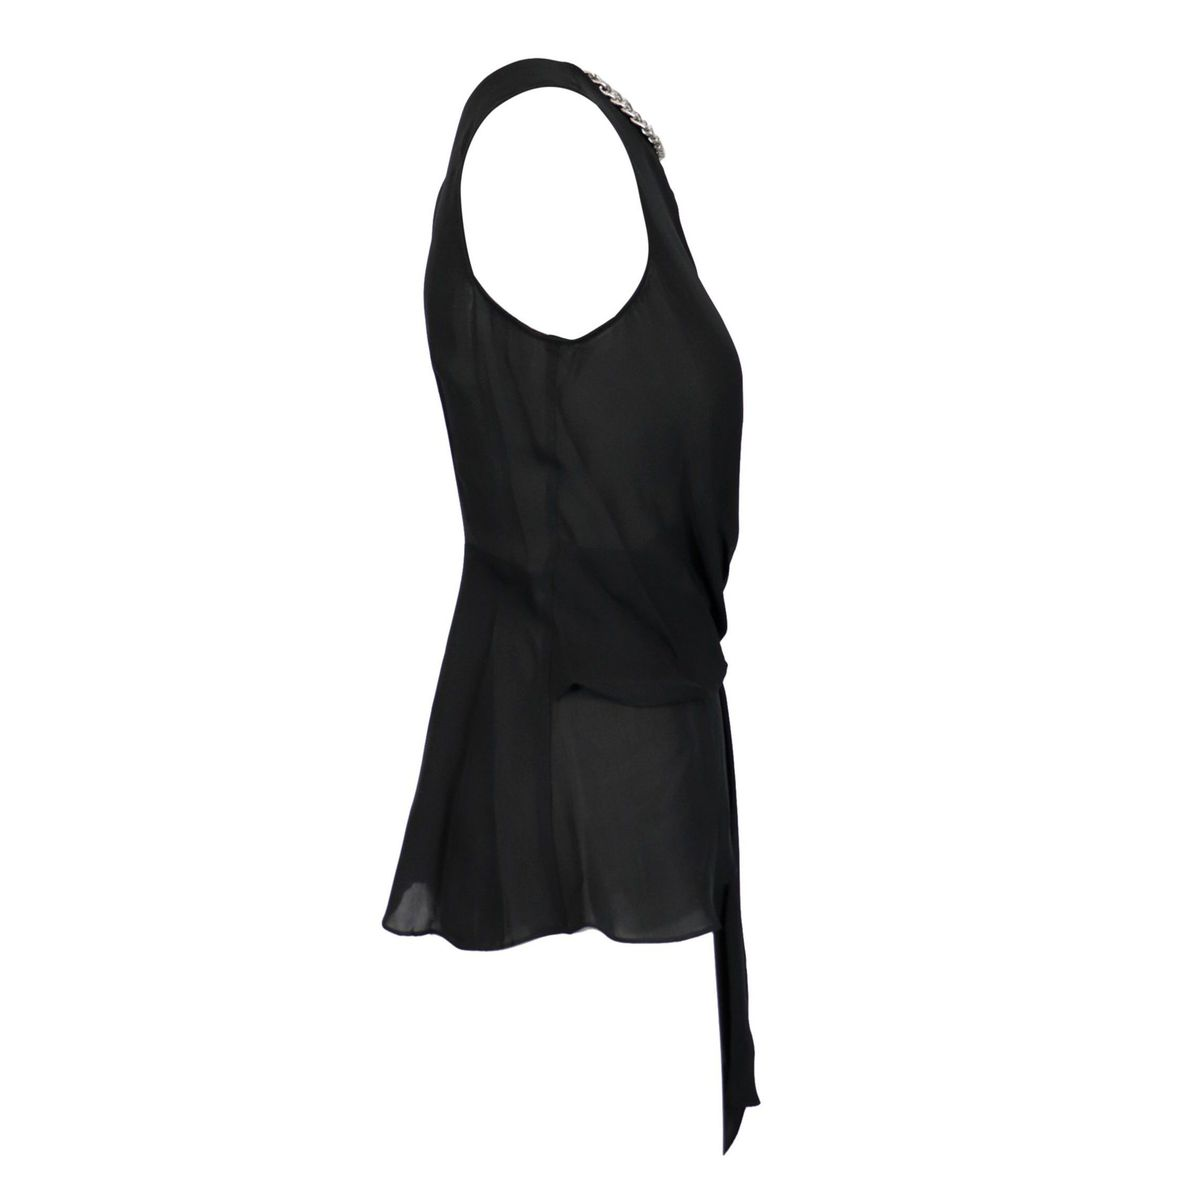 Draped silk top with chain detail on the neckline Black Michael Kors